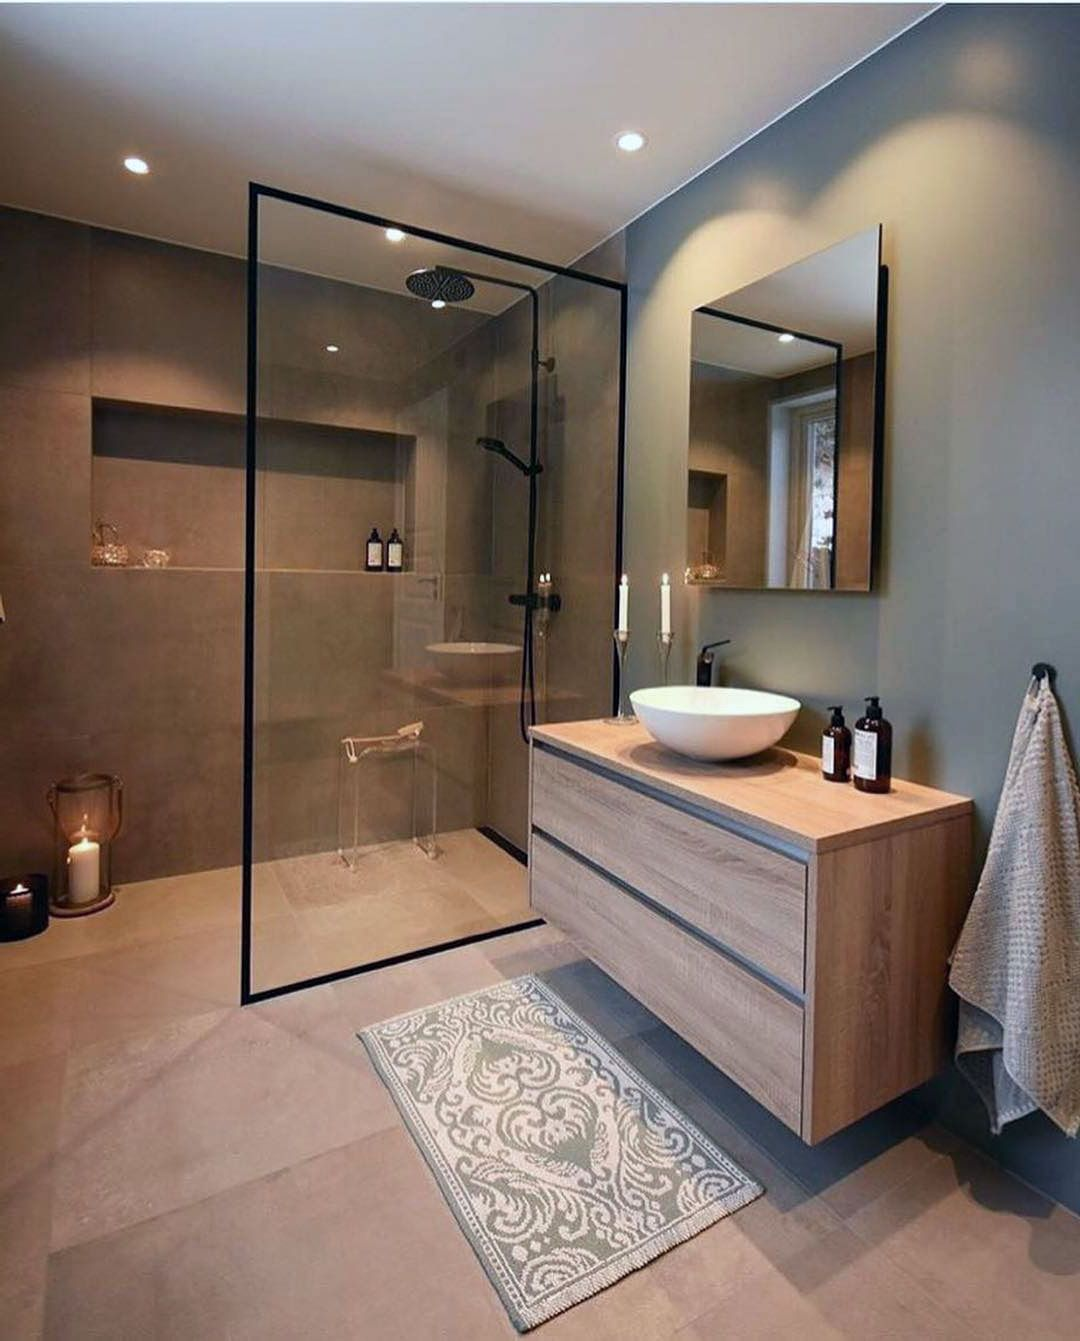 50 Adorable Mixing Rustic Theme And Scandinavian Bathroom Ideas In 2020 Bathroom Design Inspiration Modern Bathroom Design Bathroom Style